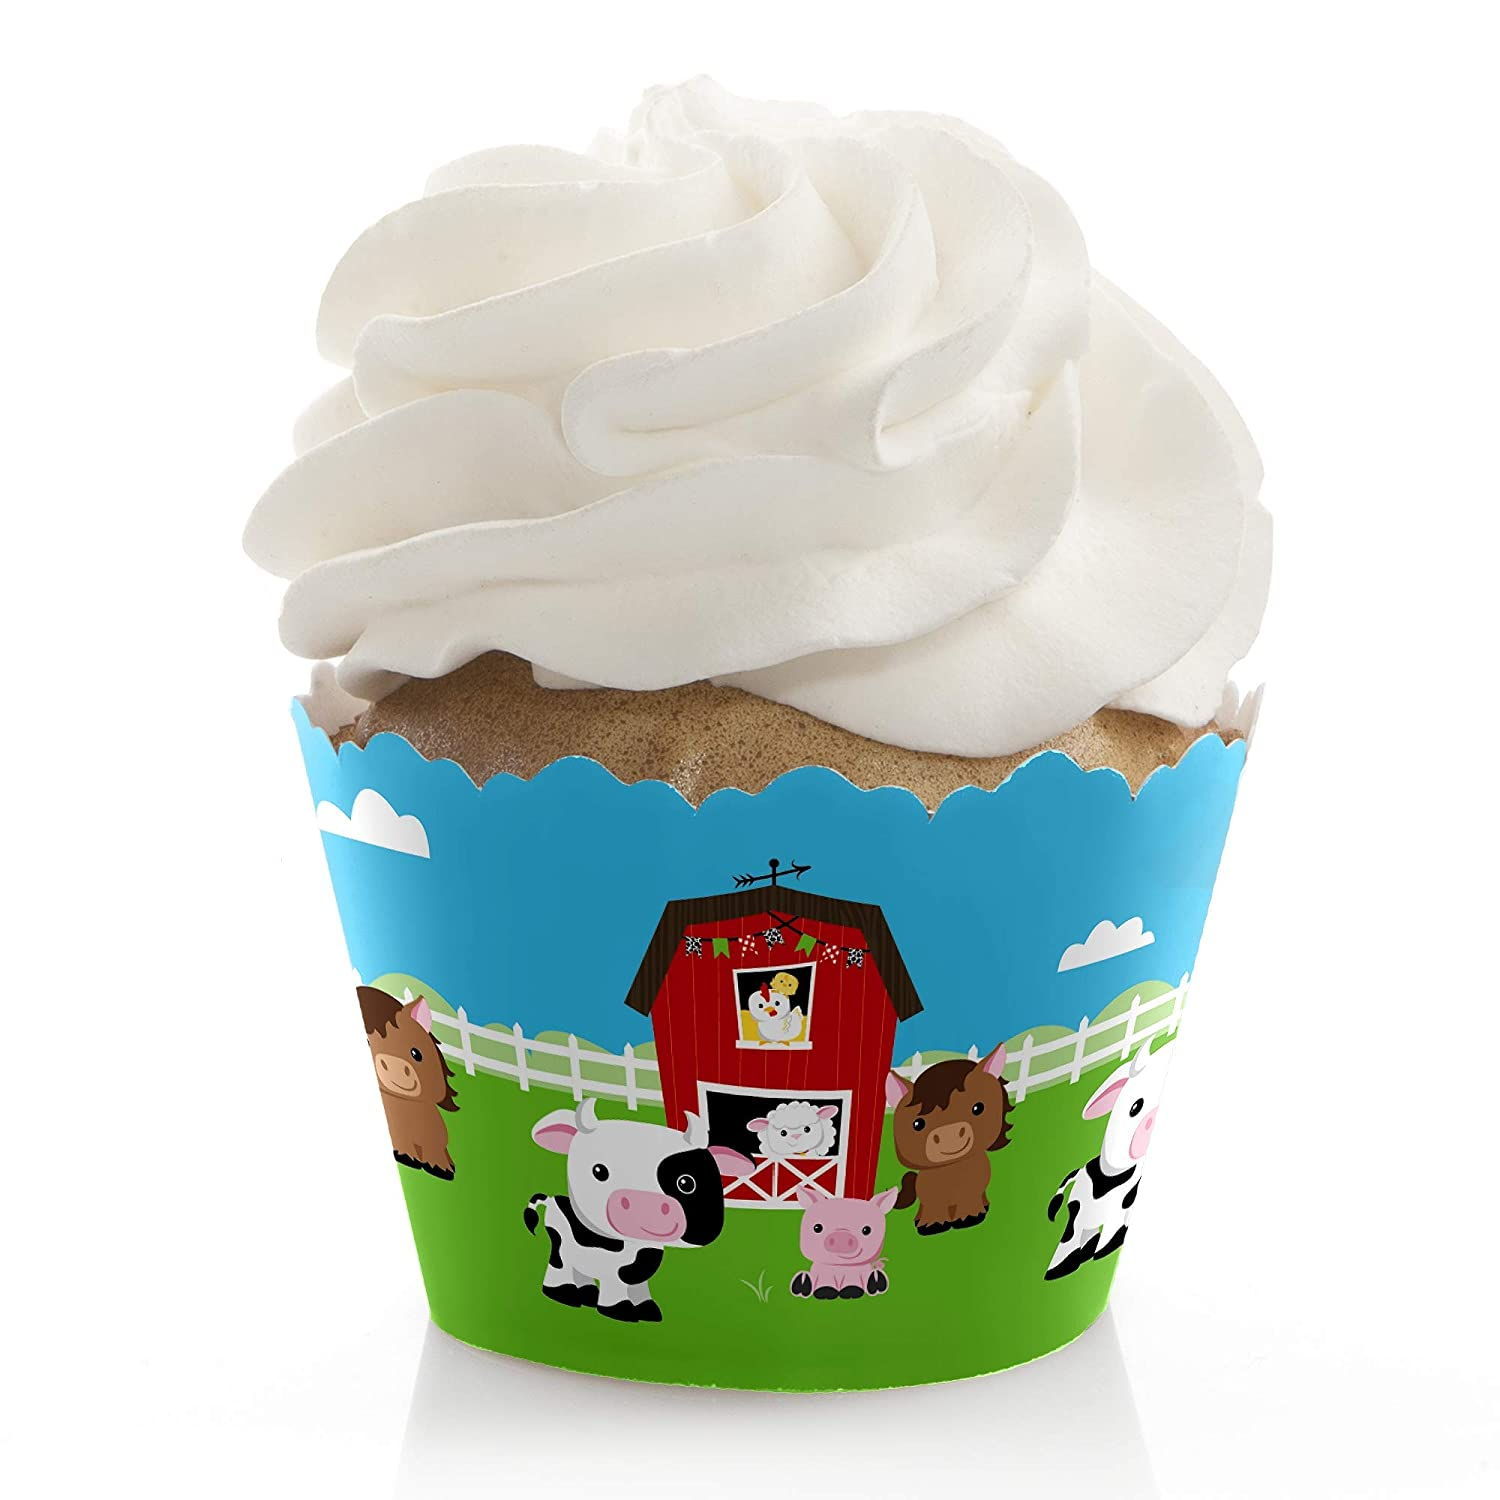 Set of 12 Baby Shower or Birthday Party Decorations Party Cupcake Wrappers Farm Animals